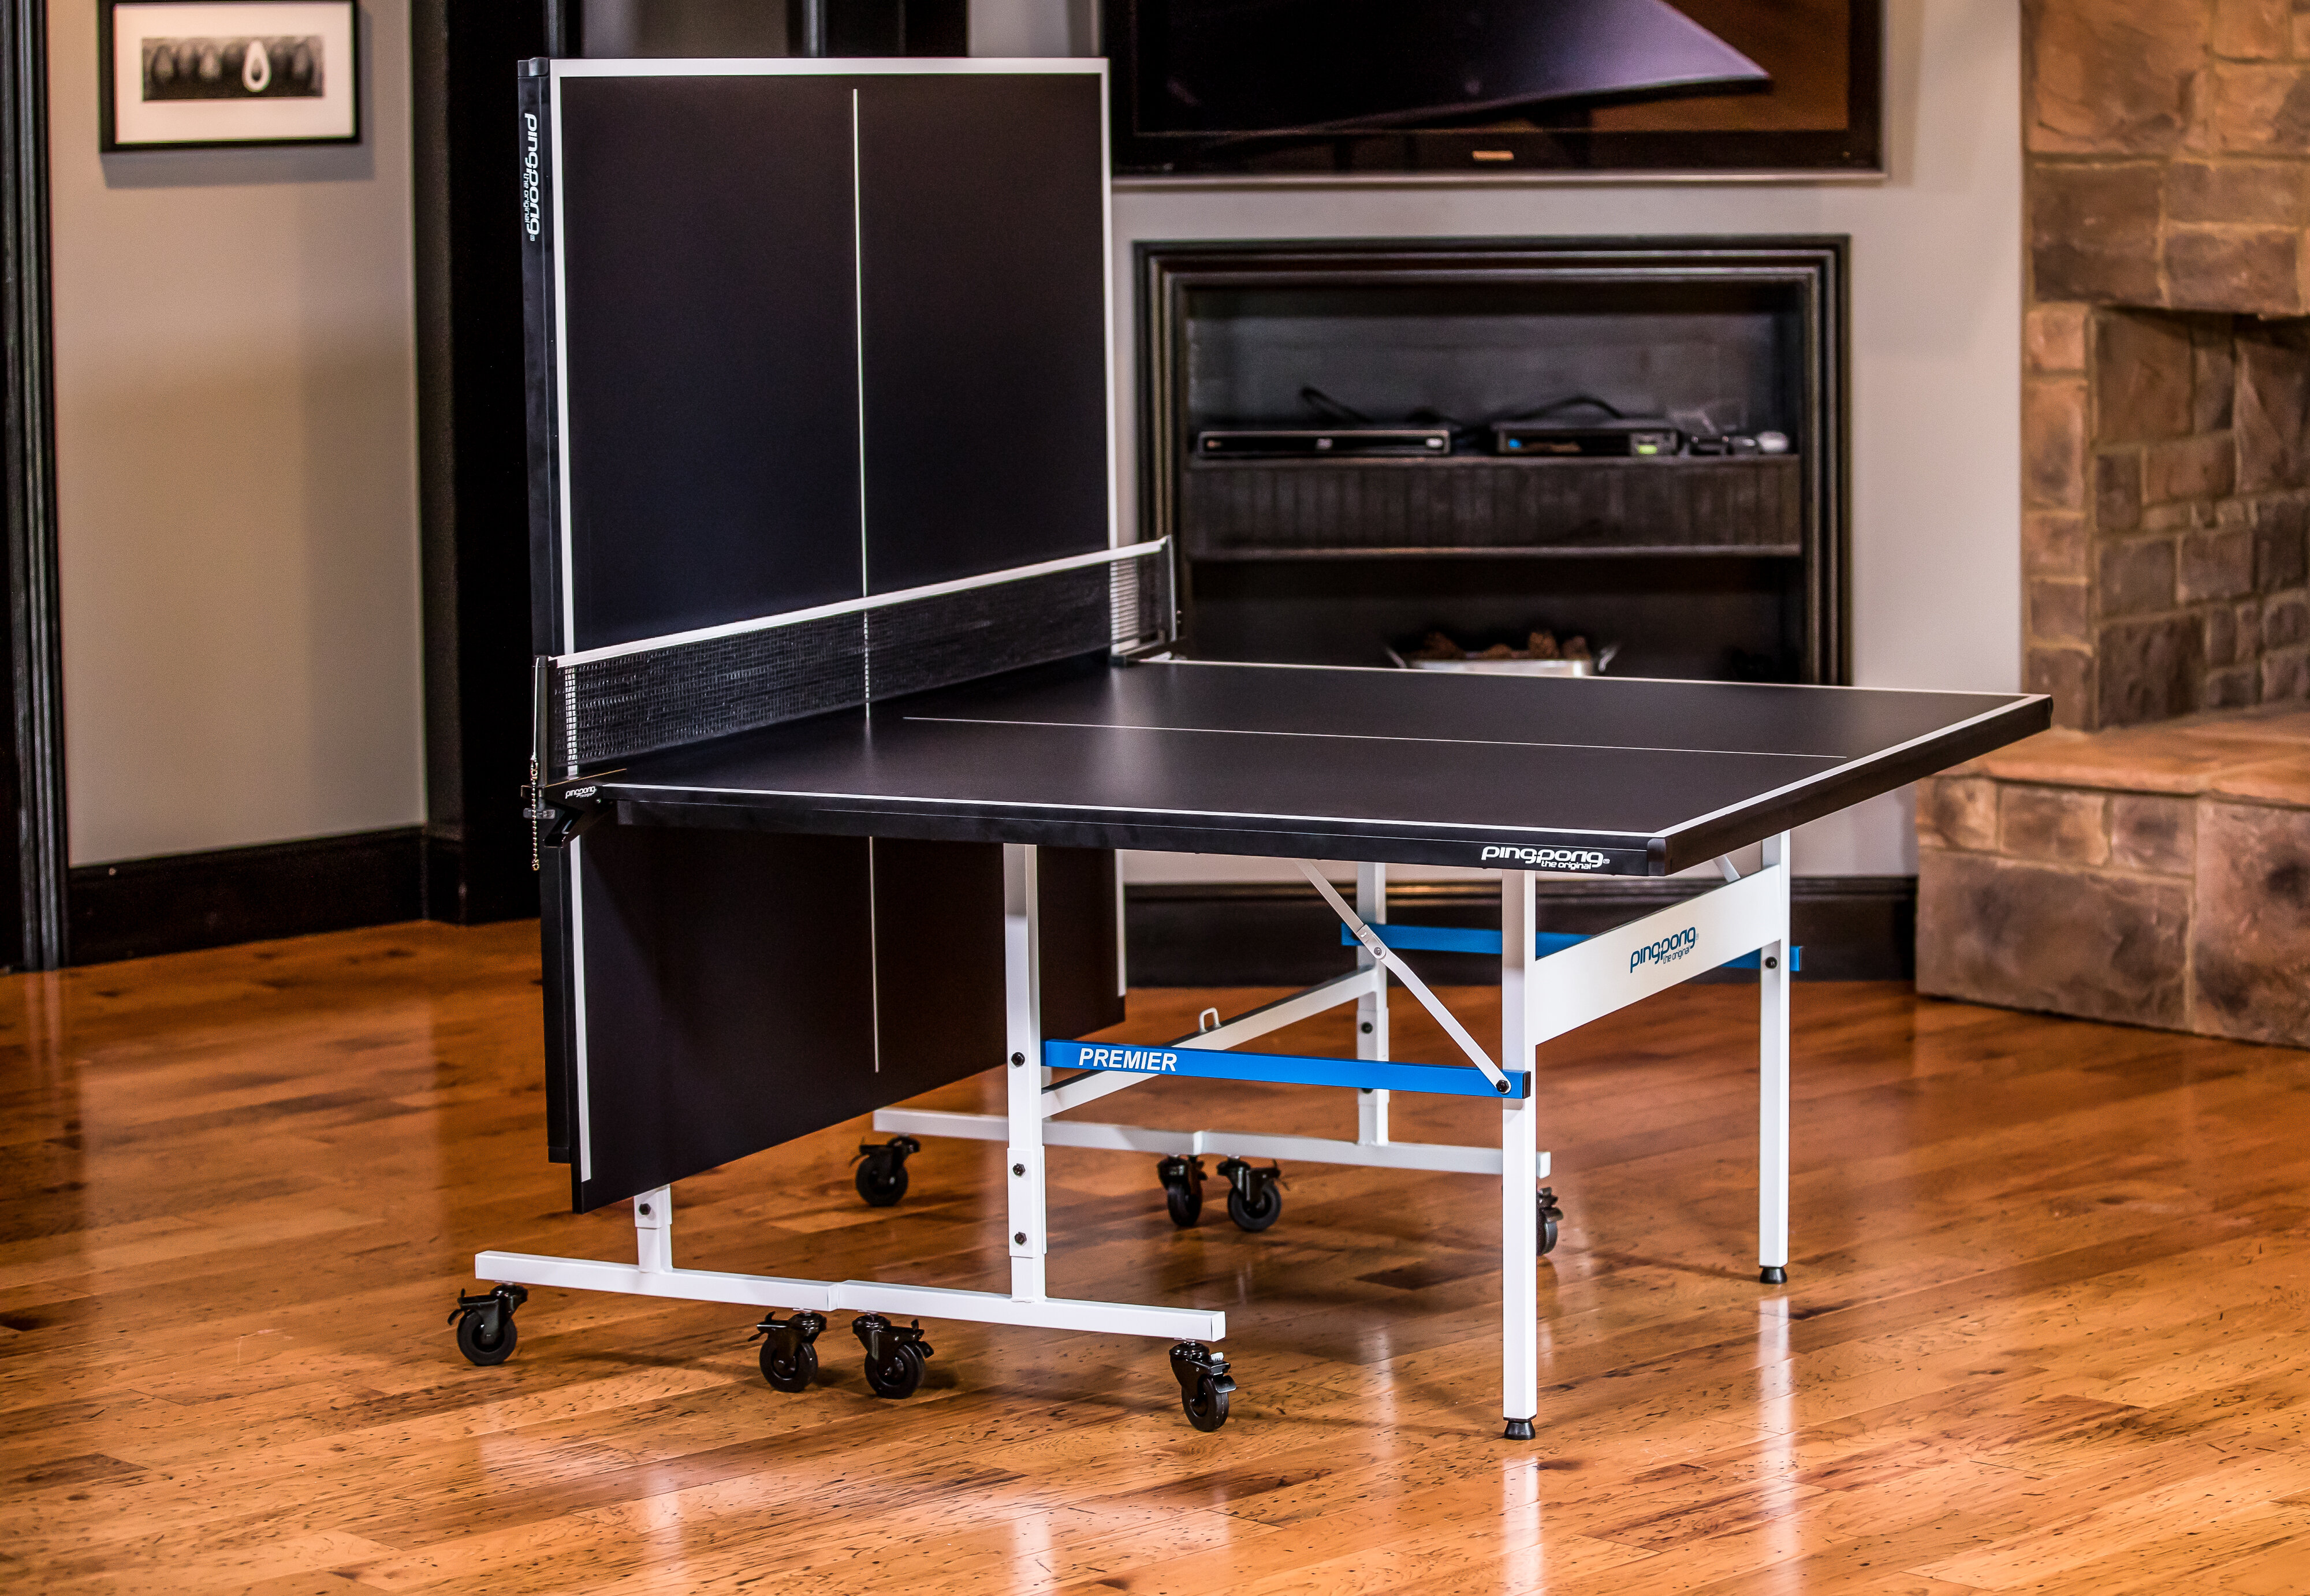 Ping Pong Regulation Size Foldable Indoor Table Tennis Table Wayfair